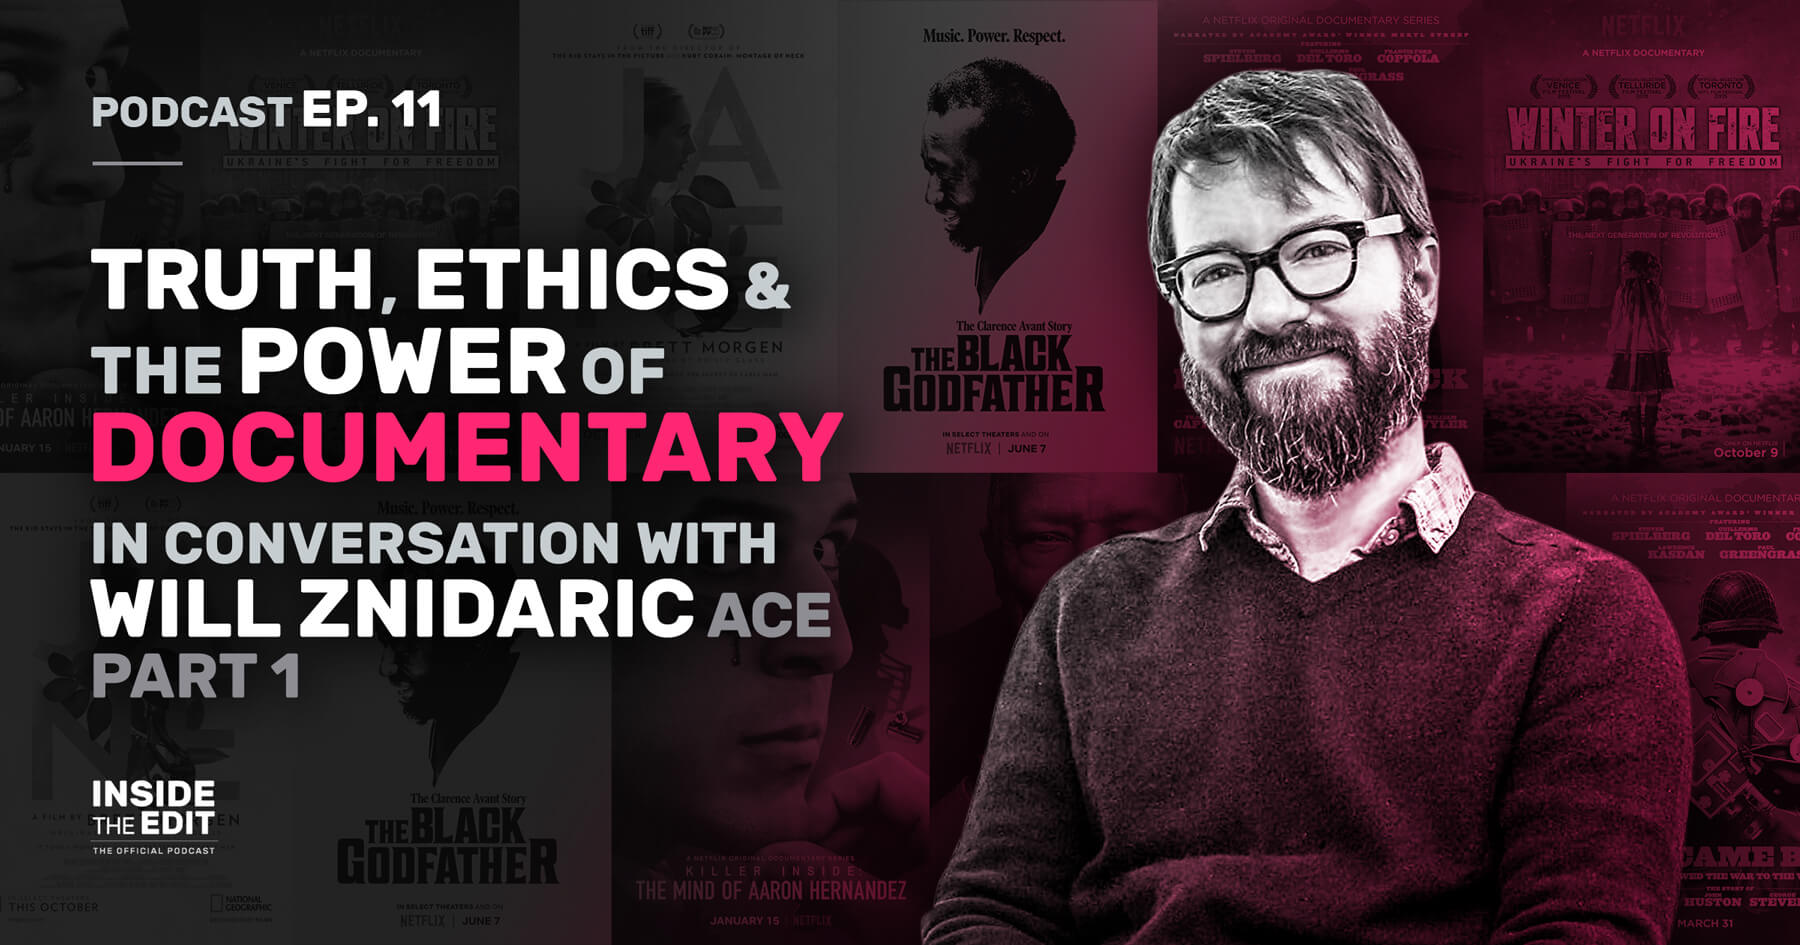 Truth, Ethics & The Power of Documentary:  In Conversation with Will Znidaric Part 1